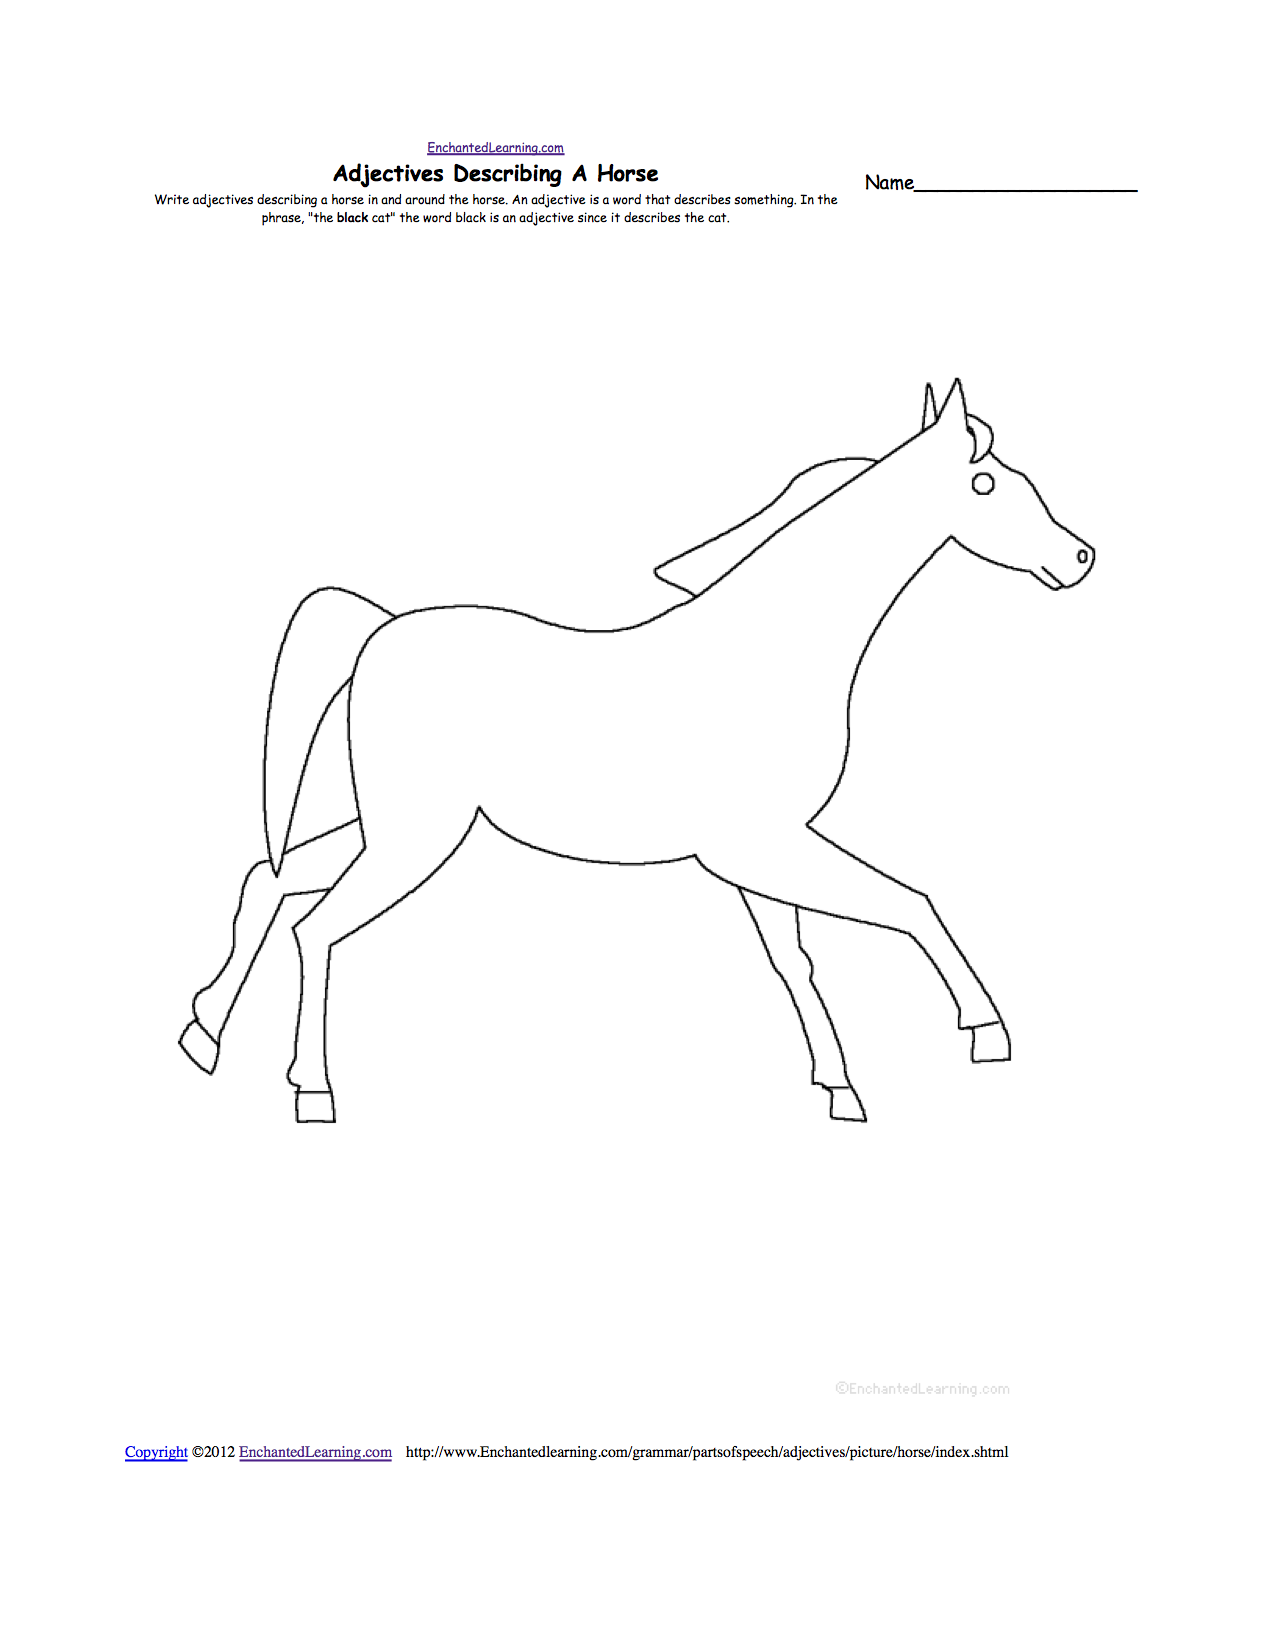 Worksheets Horse Anatomy Worksheet horses at enchantedlearning com horse